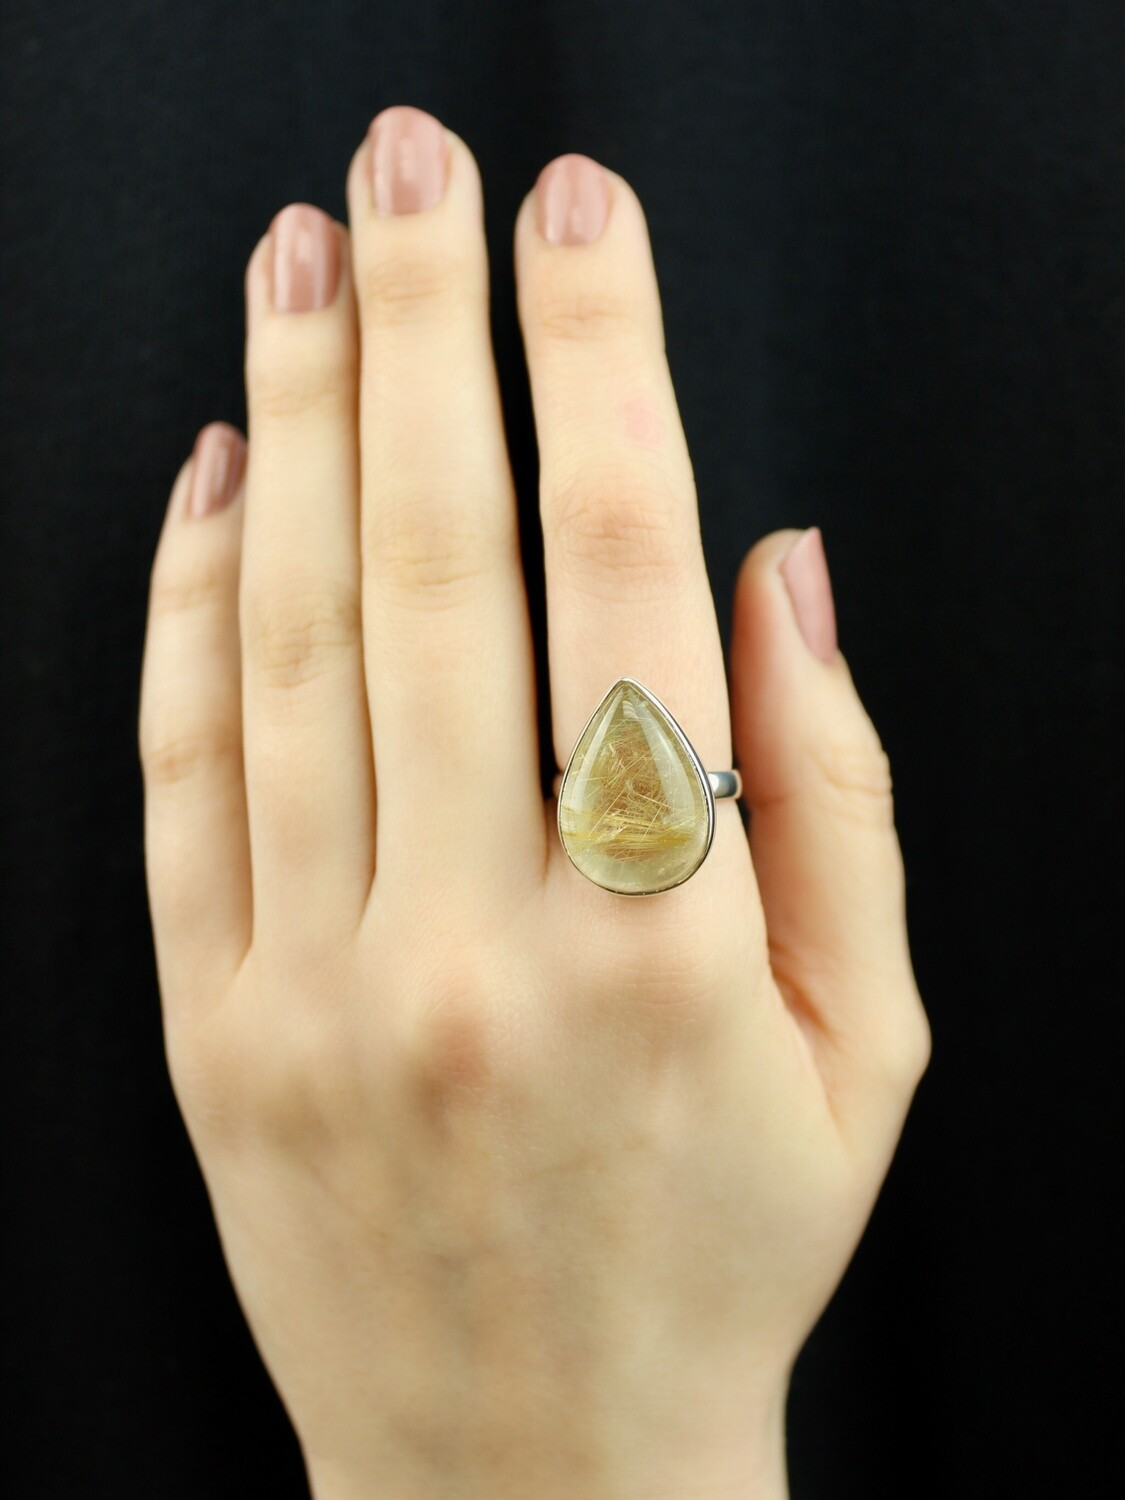 SIZE 8 - Sterling Silver Rutilated Quartz Teardrop Ring - RIG8100